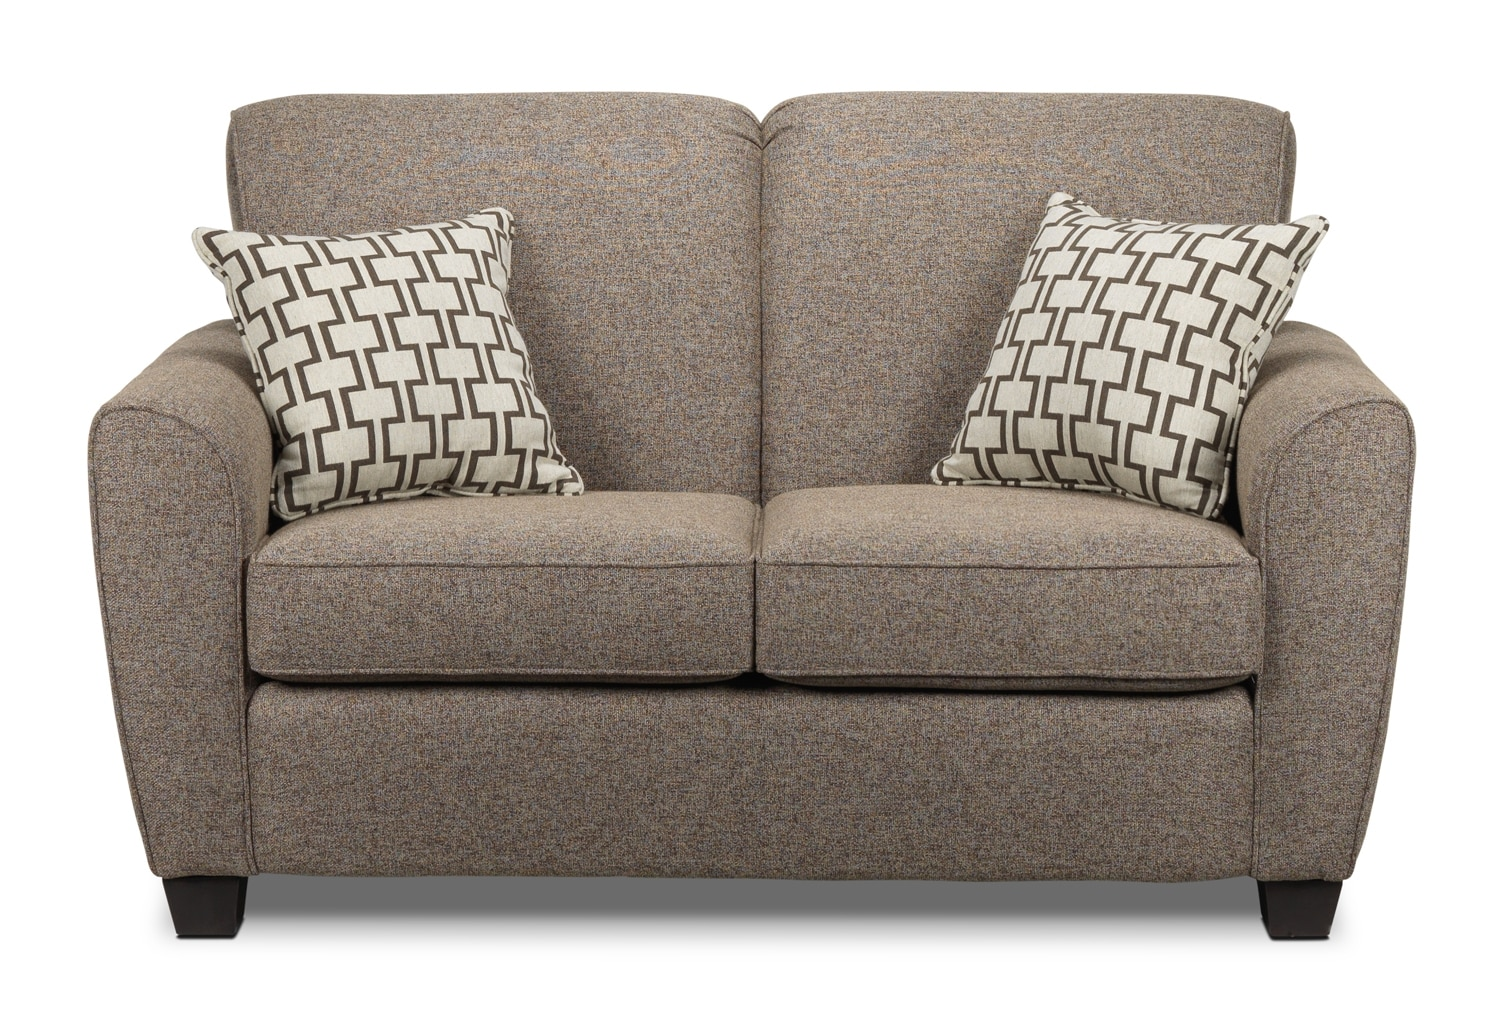 Living Room Furniture - Ashby Loveseat - Brown